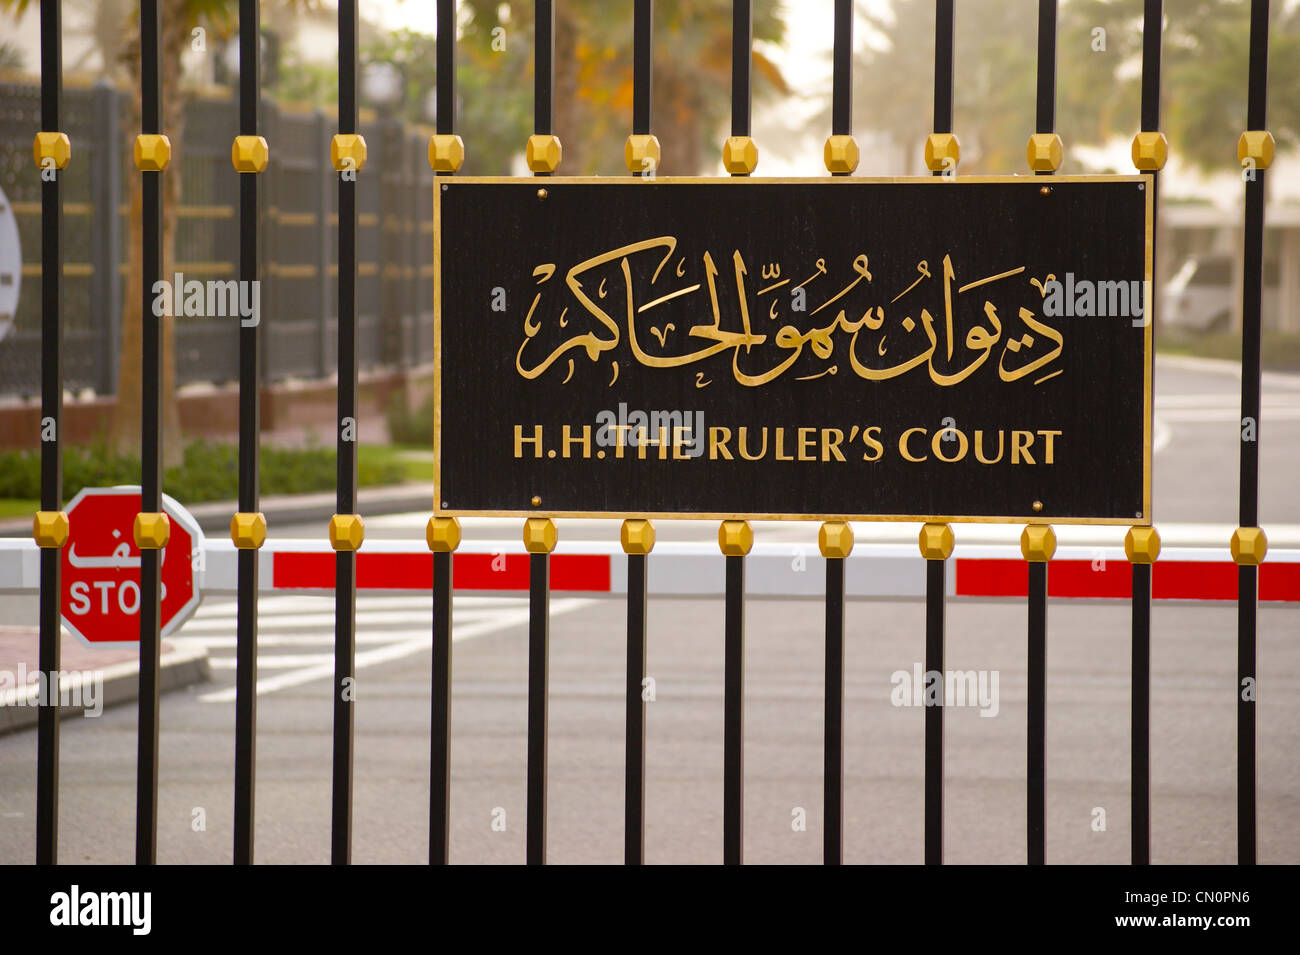 Arabic calligraphy on the entrance gate of the Ruler's Court,  at sunset Bur Dubai, United Arab Emirates - Stock Image